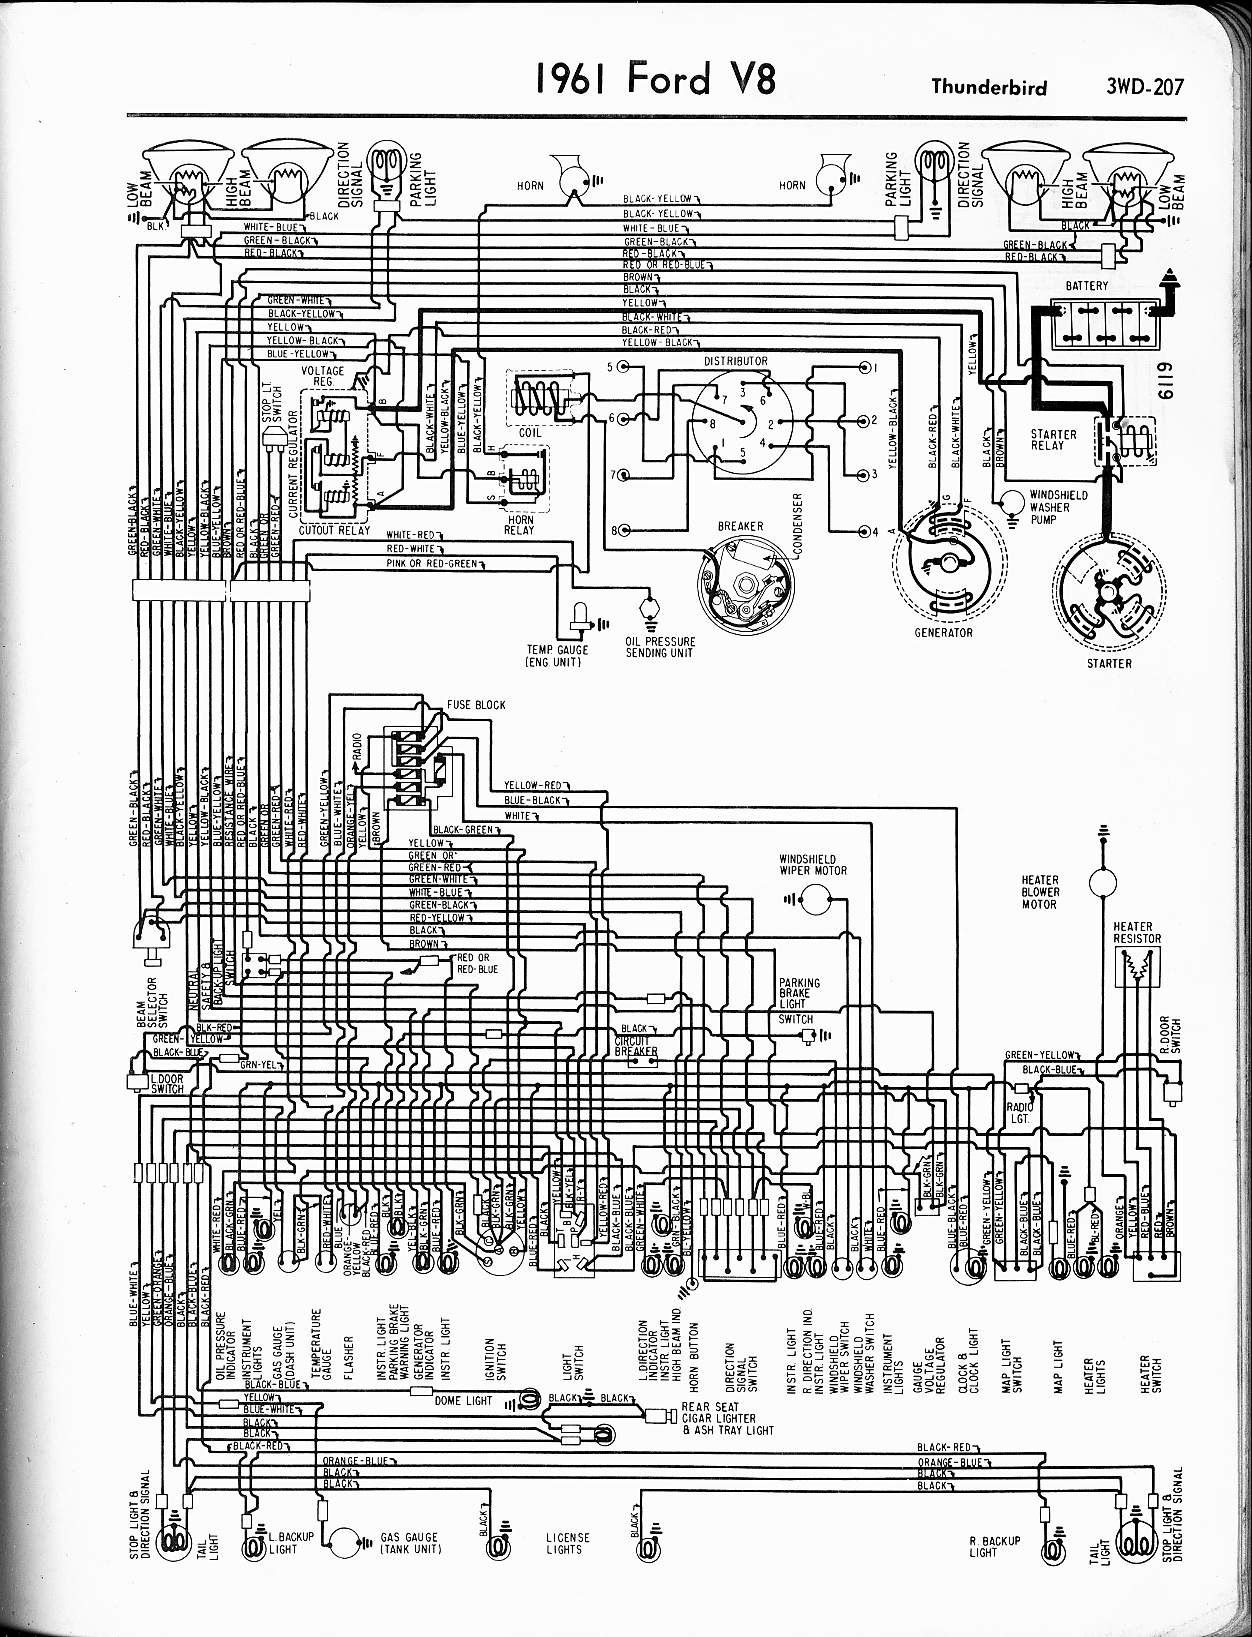 MWire5765 207 57 65 ford wiring diagrams 1965 ford thunderbird wiring diagram at crackthecode.co